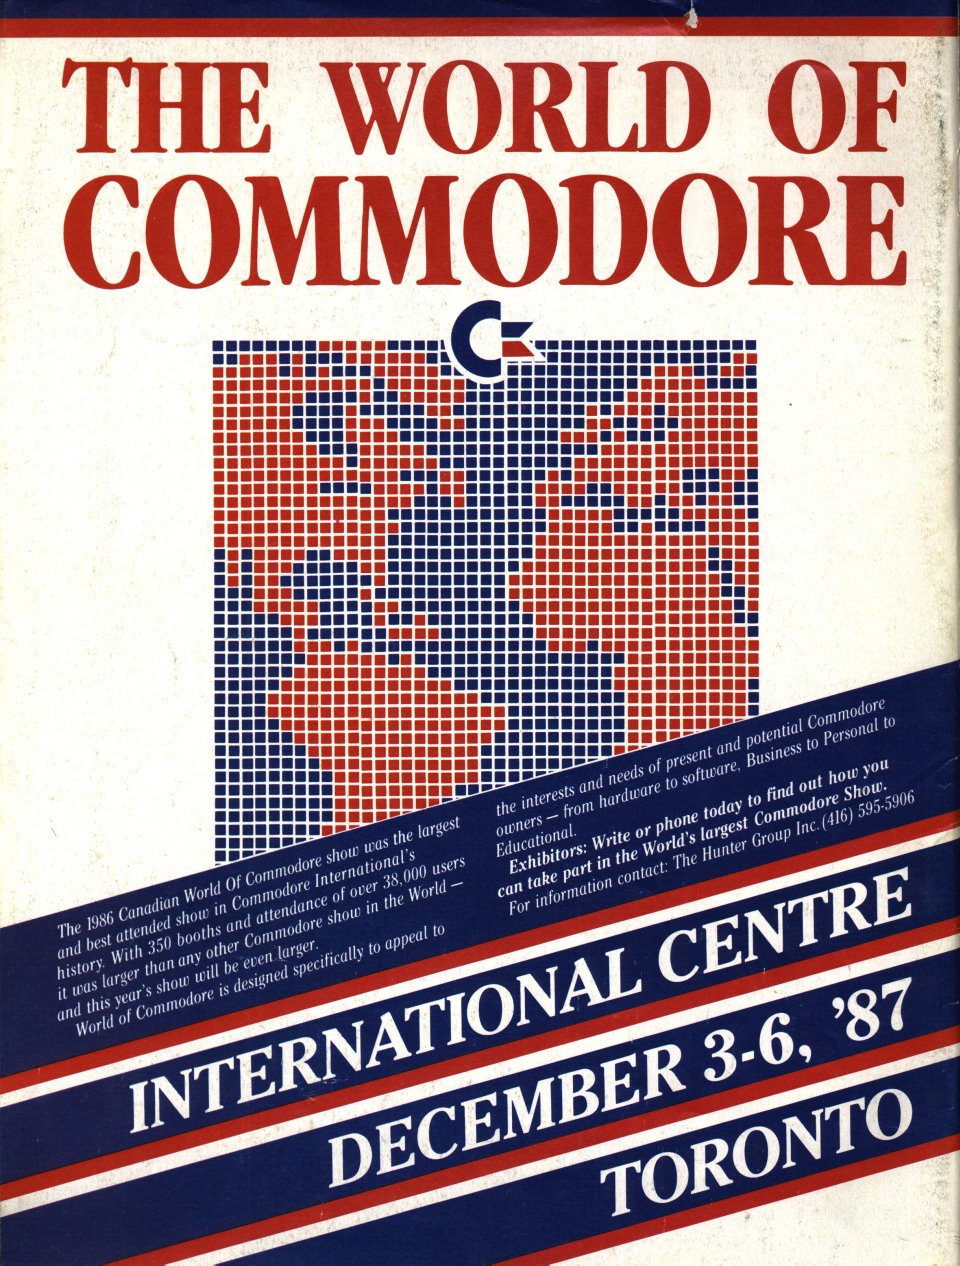 [Advertisement: The World of Commodore, International Centre, December 3-6, '87, Toronto]